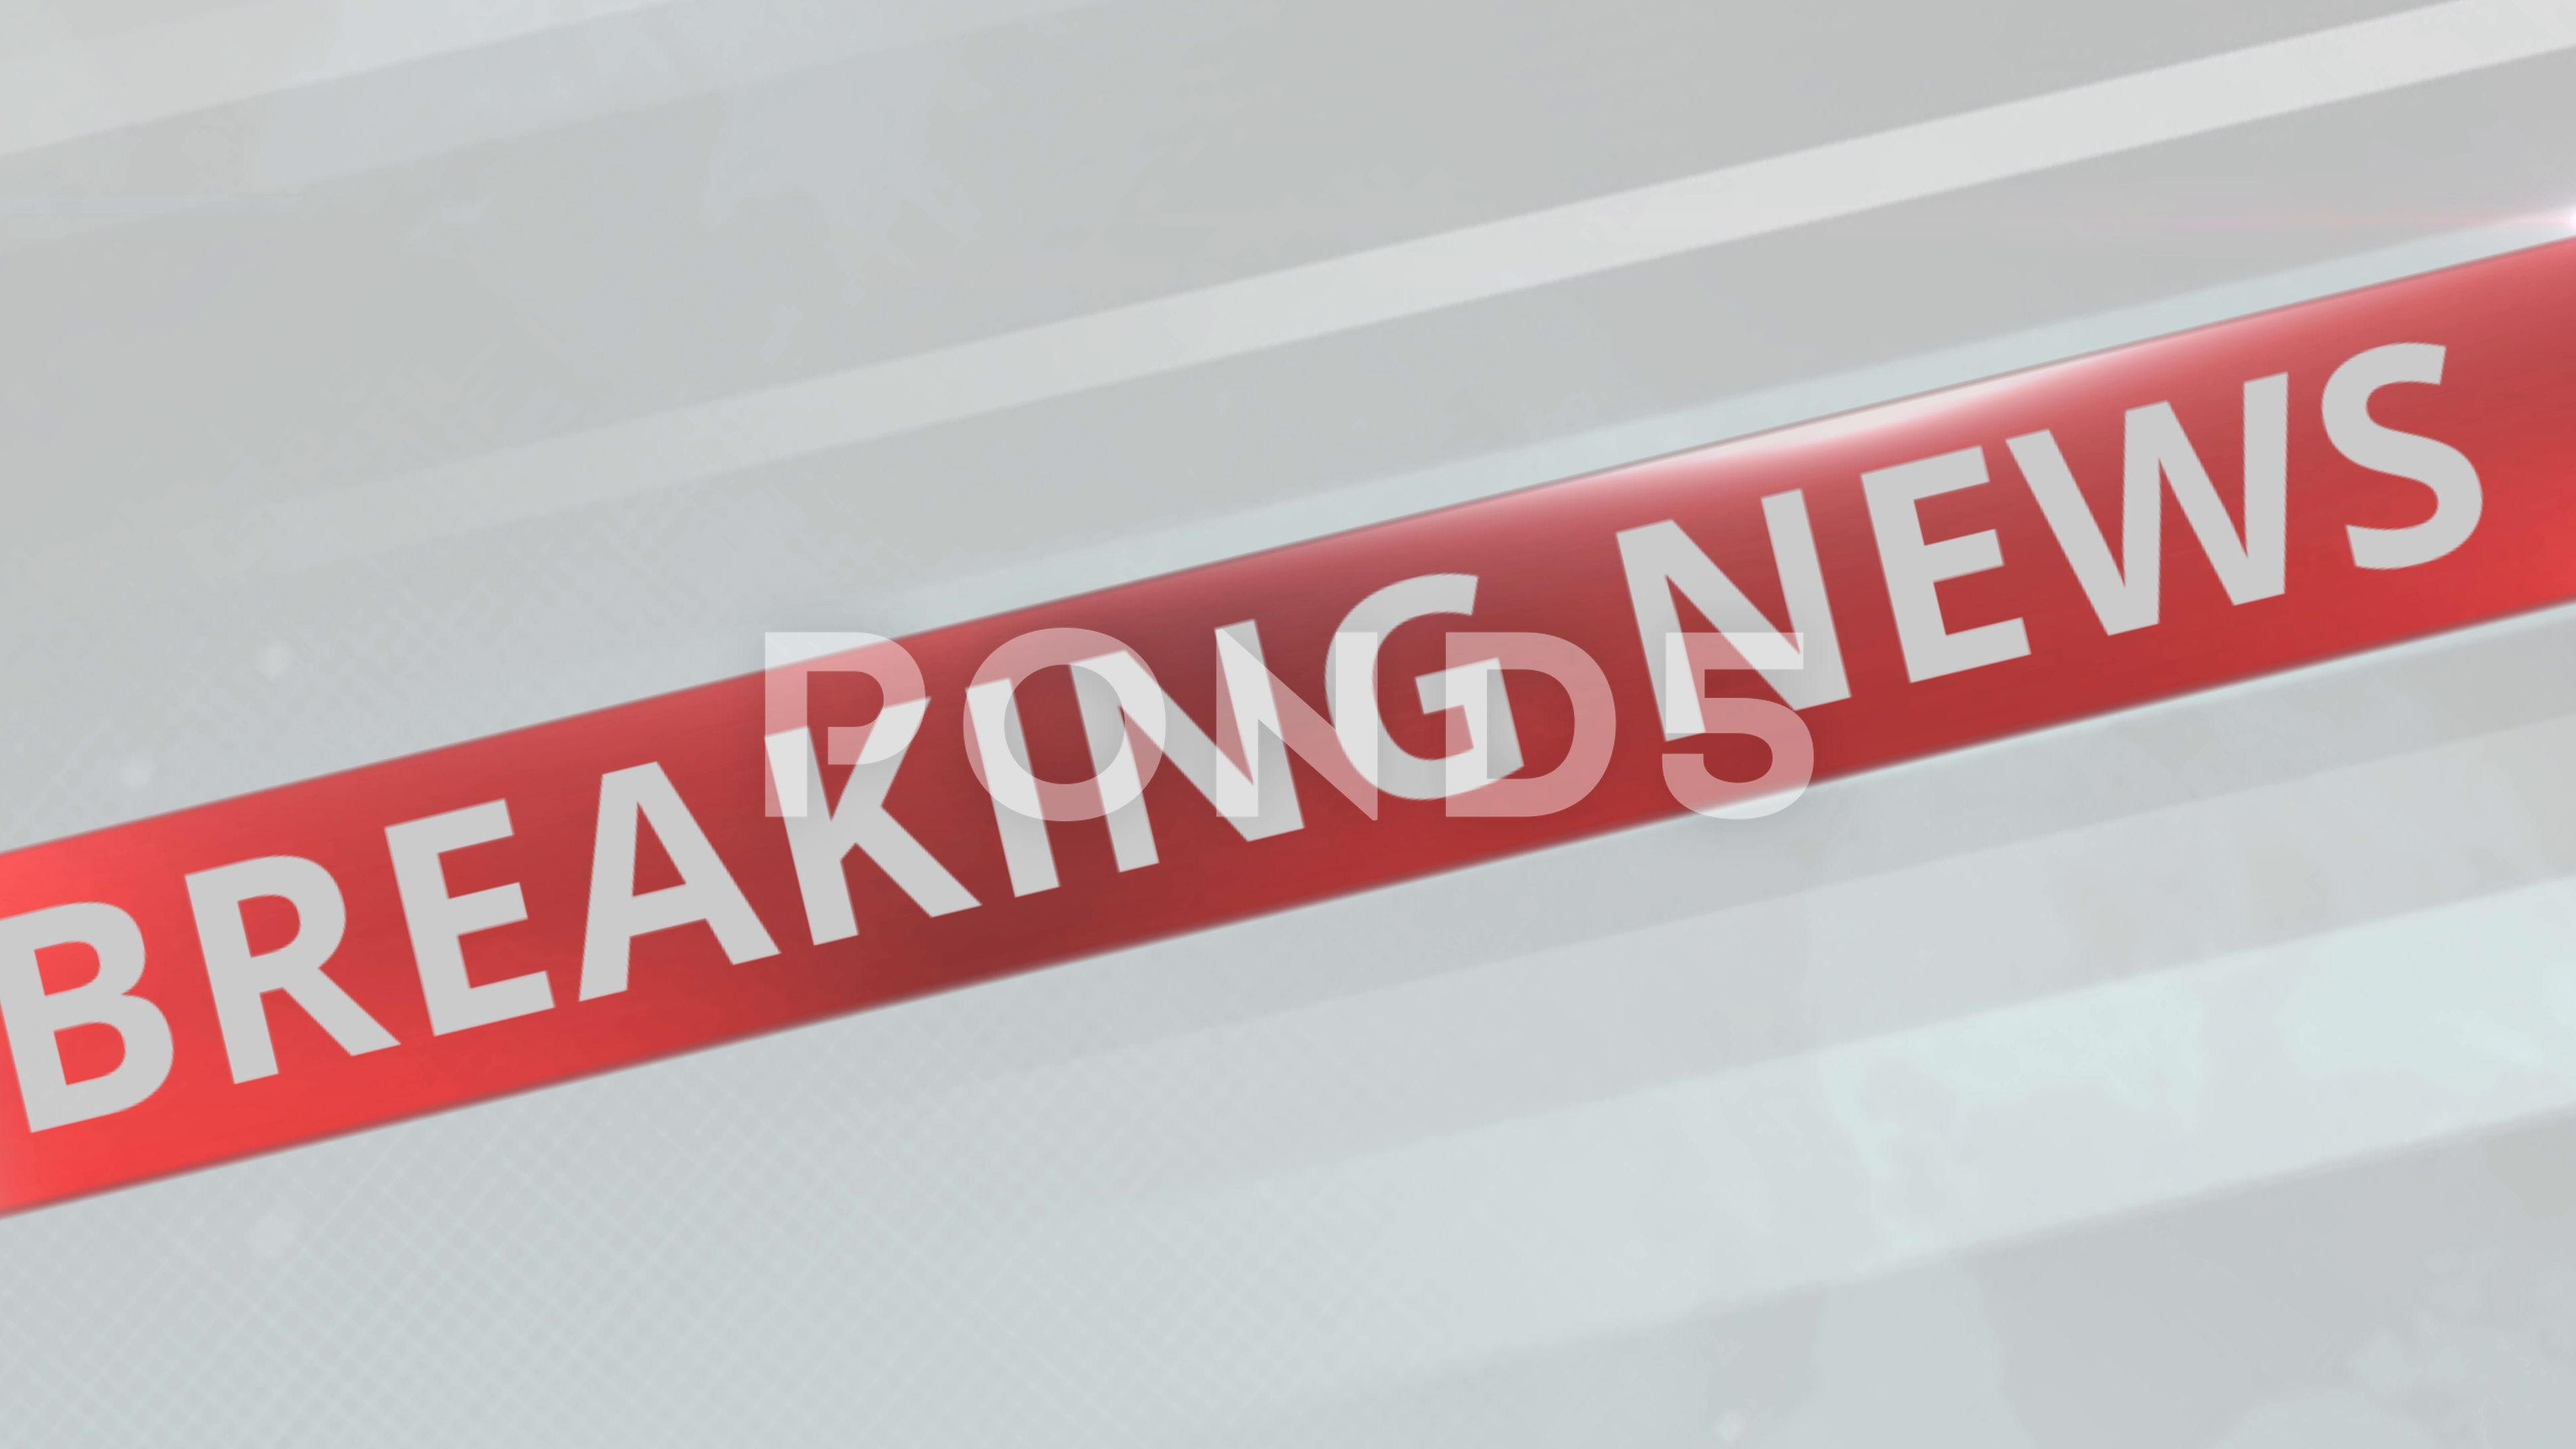 Breaking News Live Report Presentation Title For Television Media Background Stock Footagereport